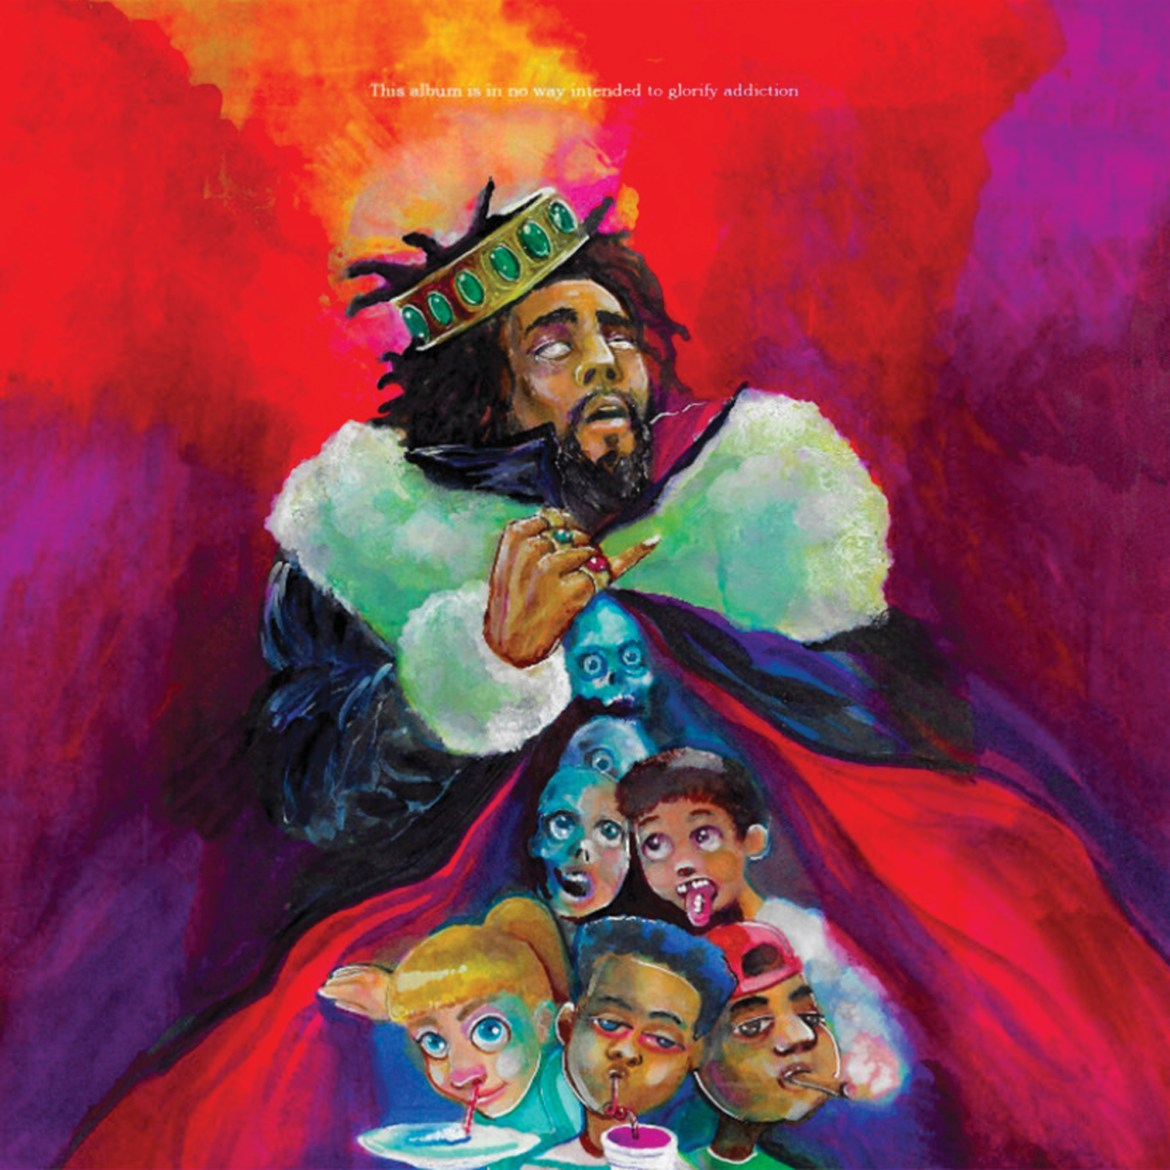 Courtesy of Dreamville